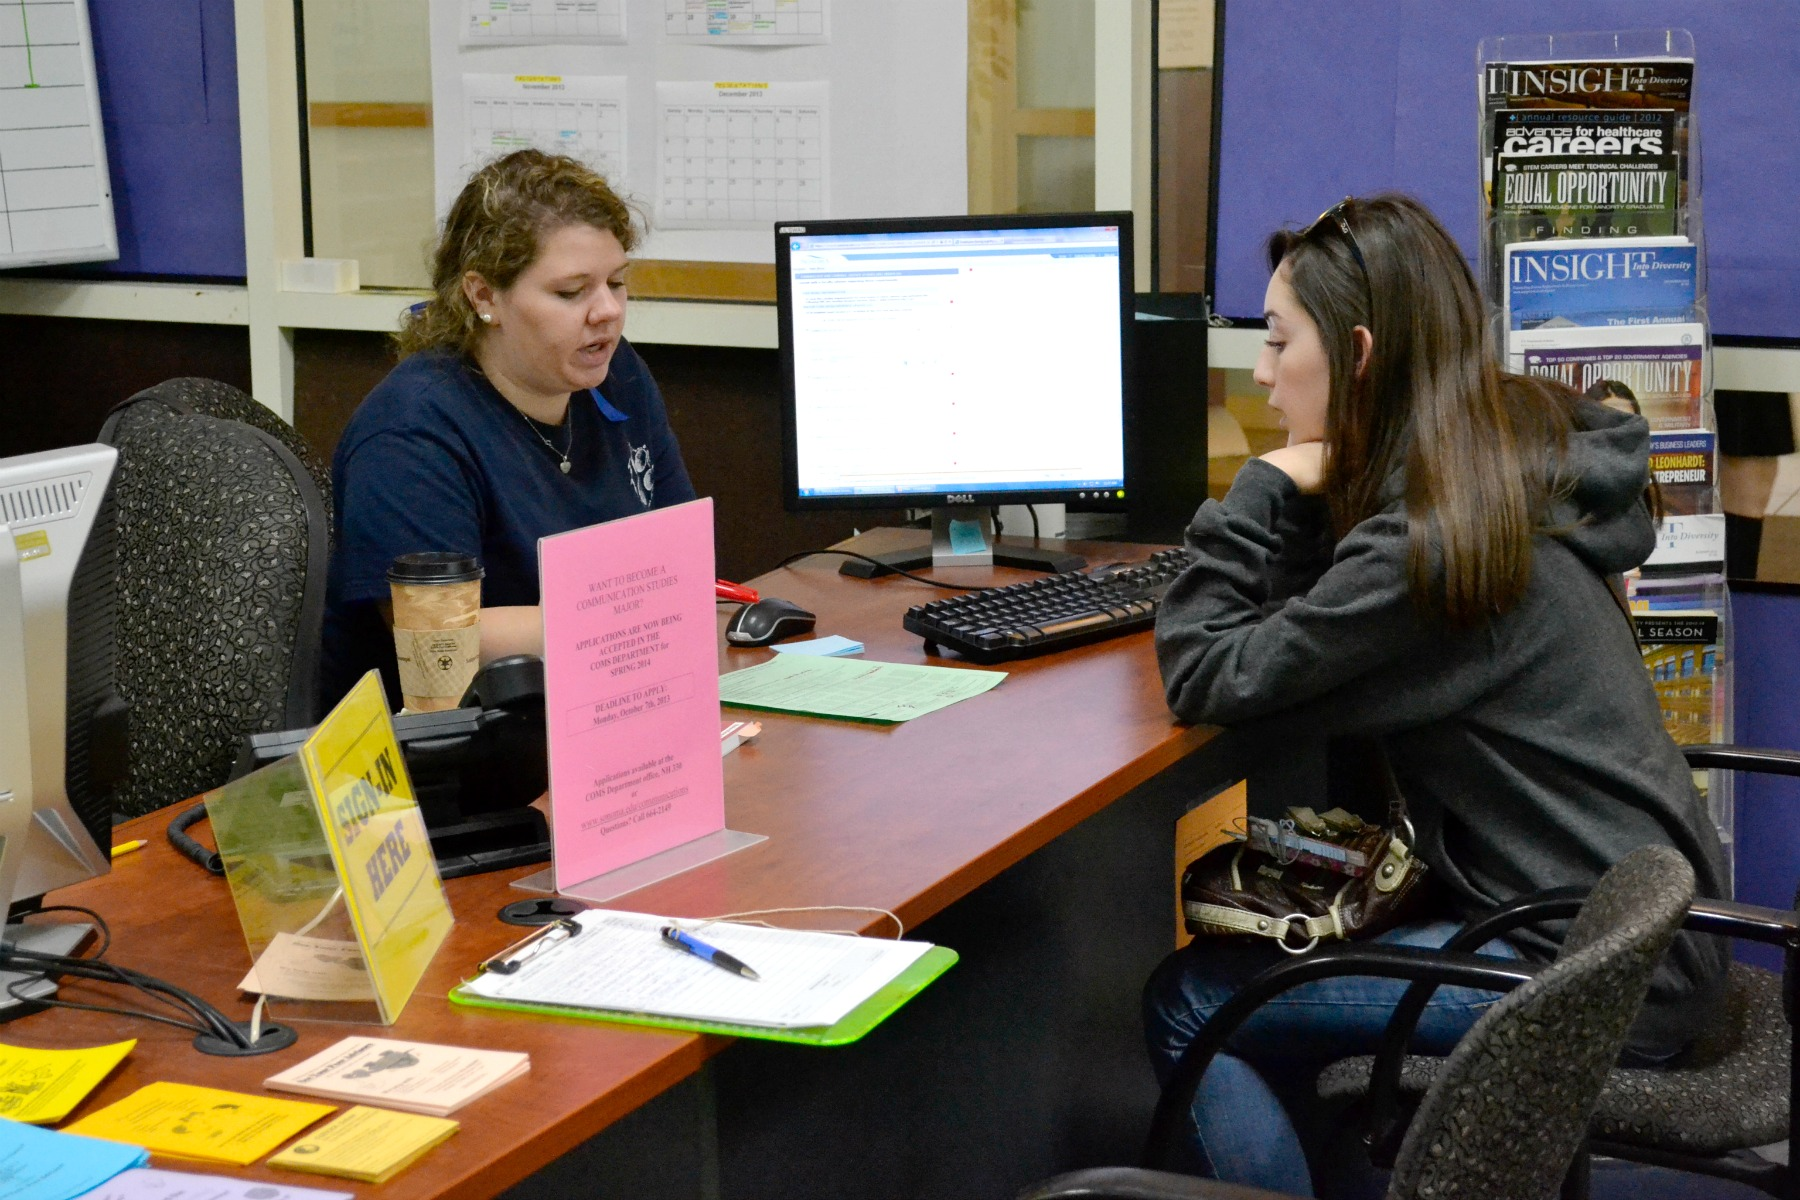 STAR // Lina Raffaelli    Peer advisor Lauren Dillier helps students figure out which requirements they need to complete and the best way to do it.